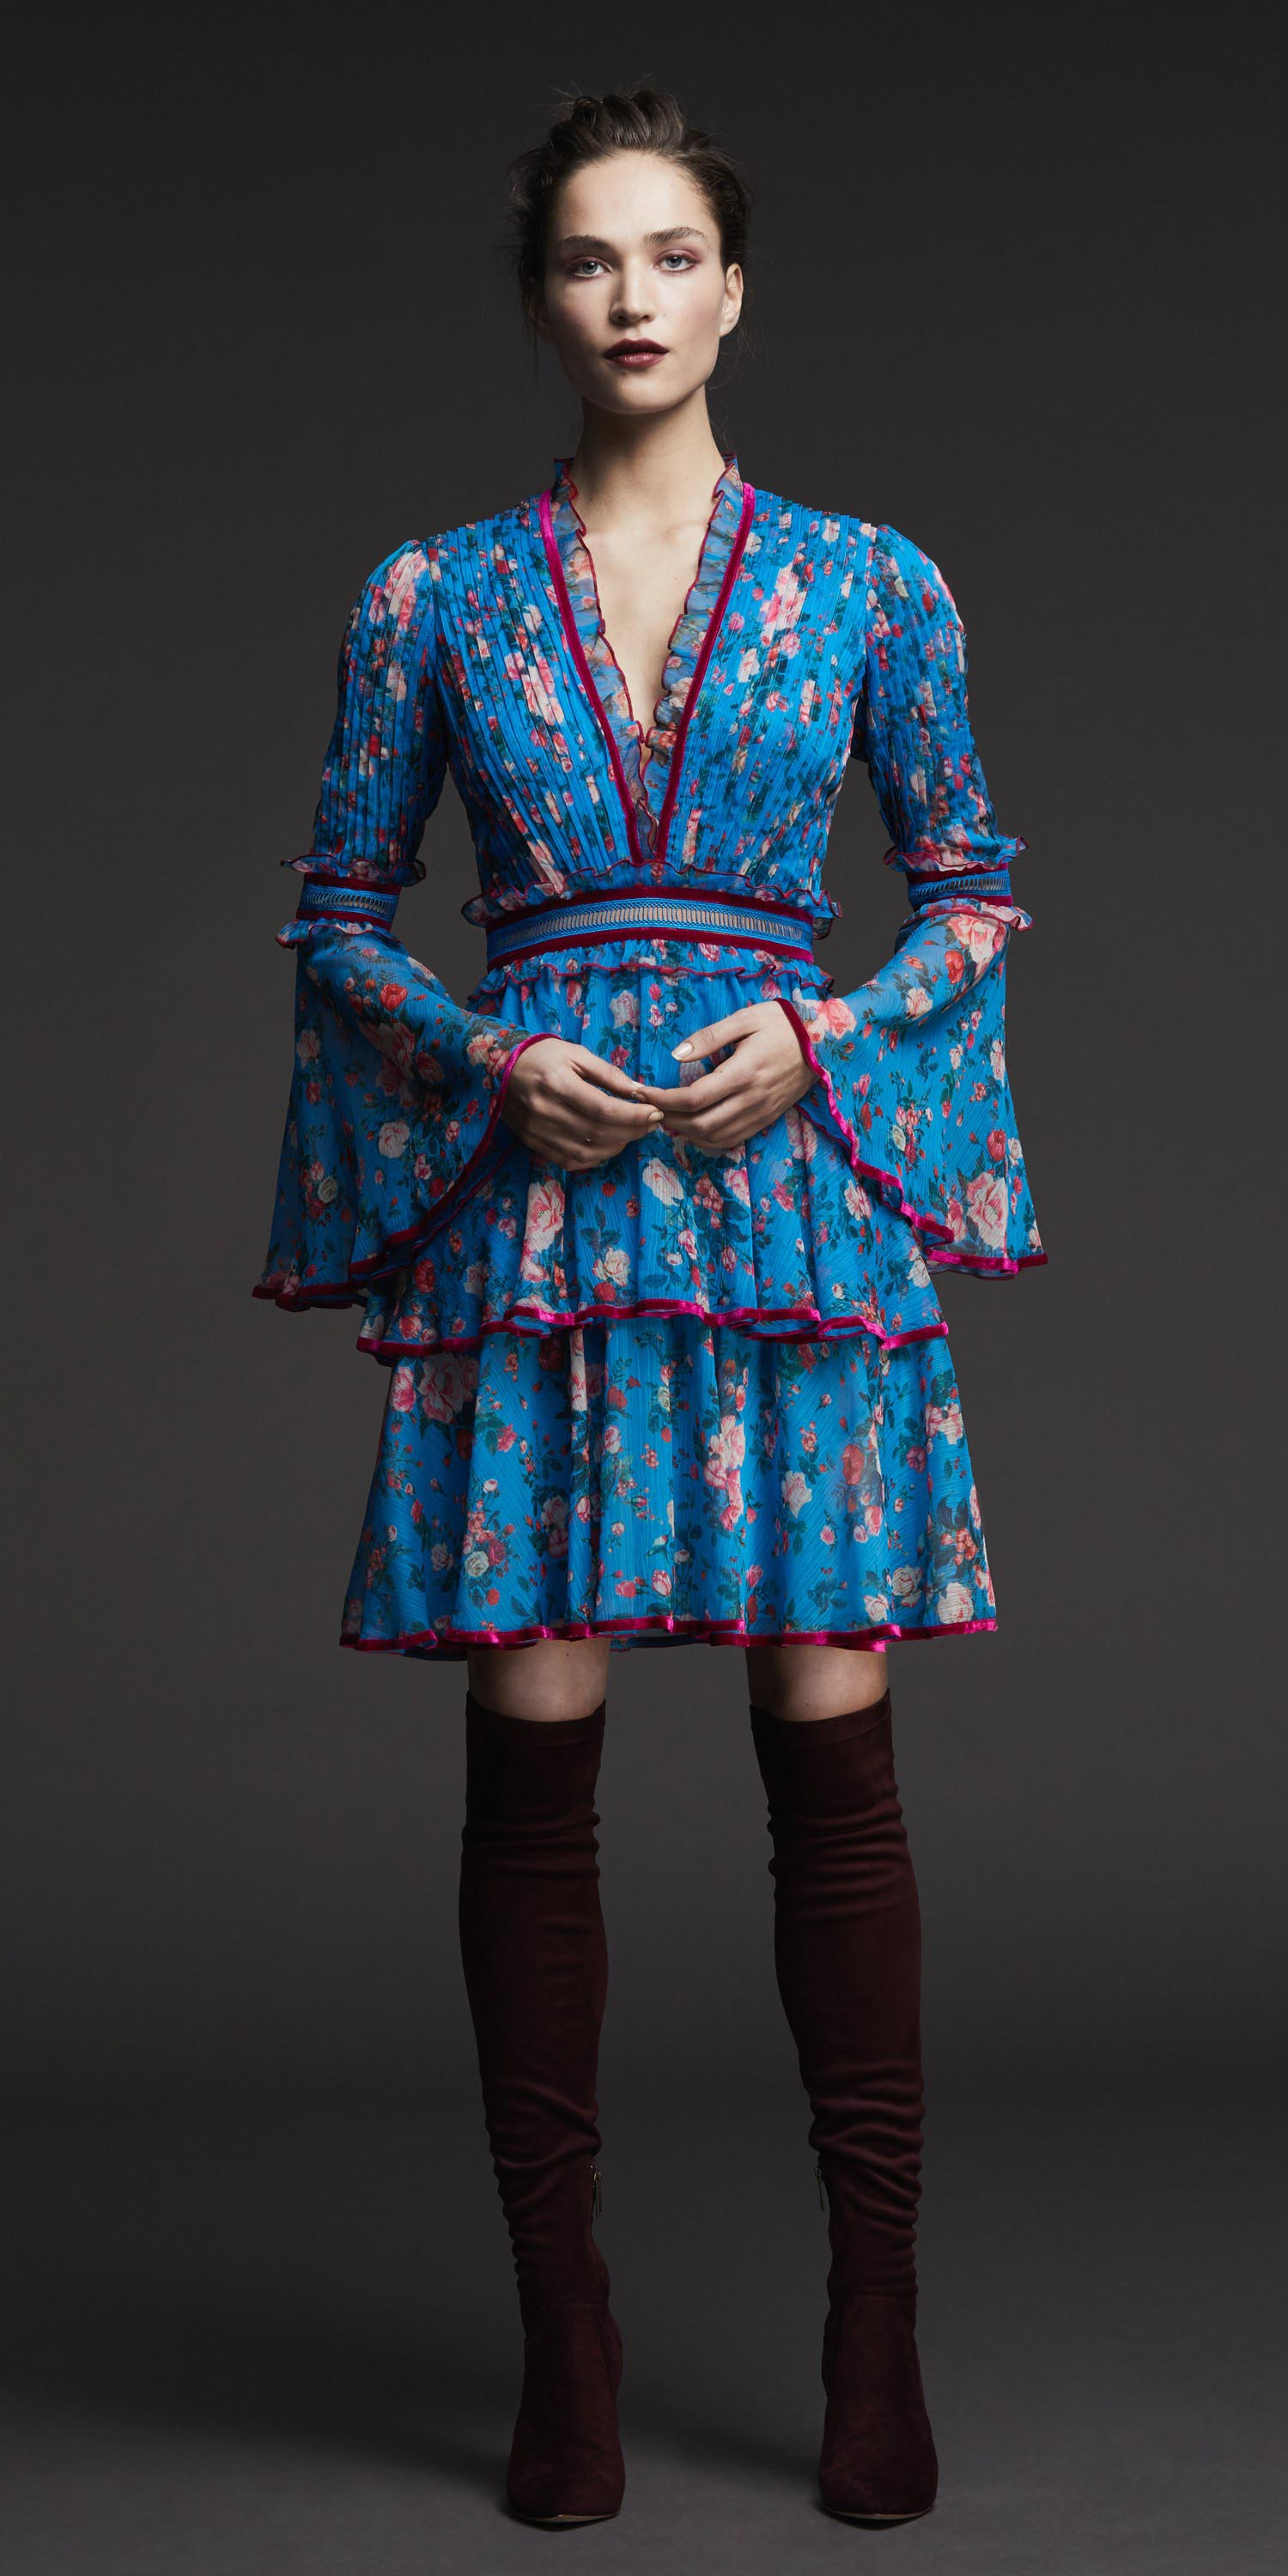 blue-med-dress-peasant-print-bun-hairr-burgundy-shoe-boots-otk-fall-winter-dinner.jpg